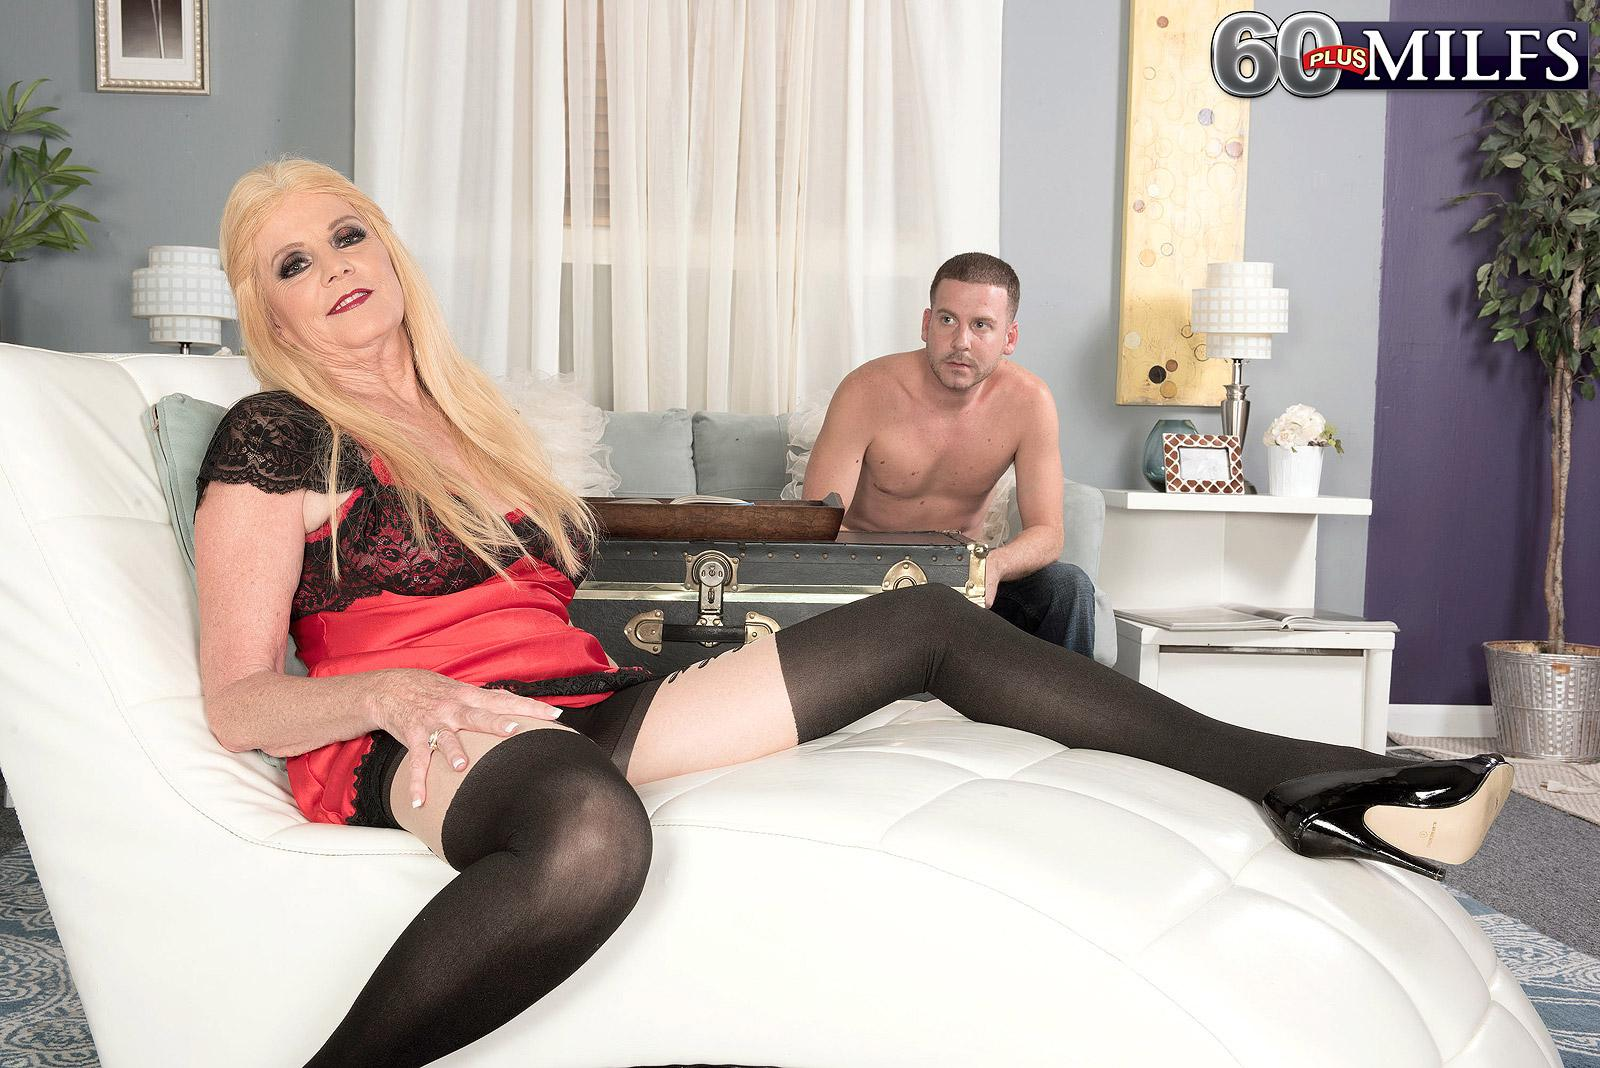 Stocking and lingerie garmented sixty plus platinum-blonde MILF Charlie whipping out huge titties for nip play